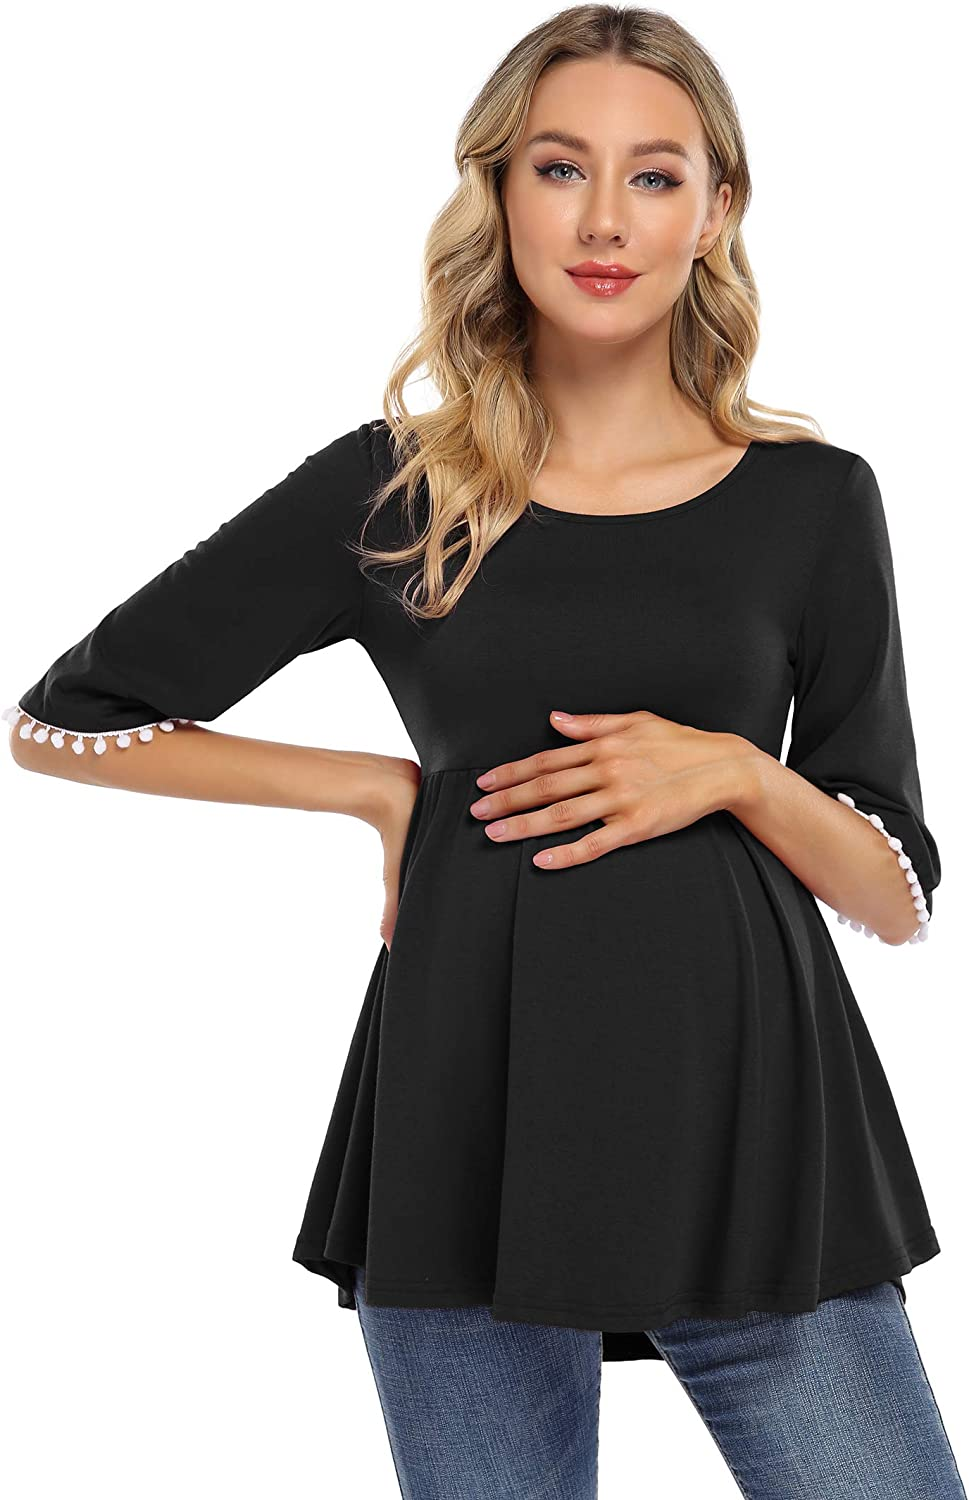 Coolmee Maternity Tops Womens Casual Maternity Tunic Tops Nursing Tee Shirt Casual Clothes